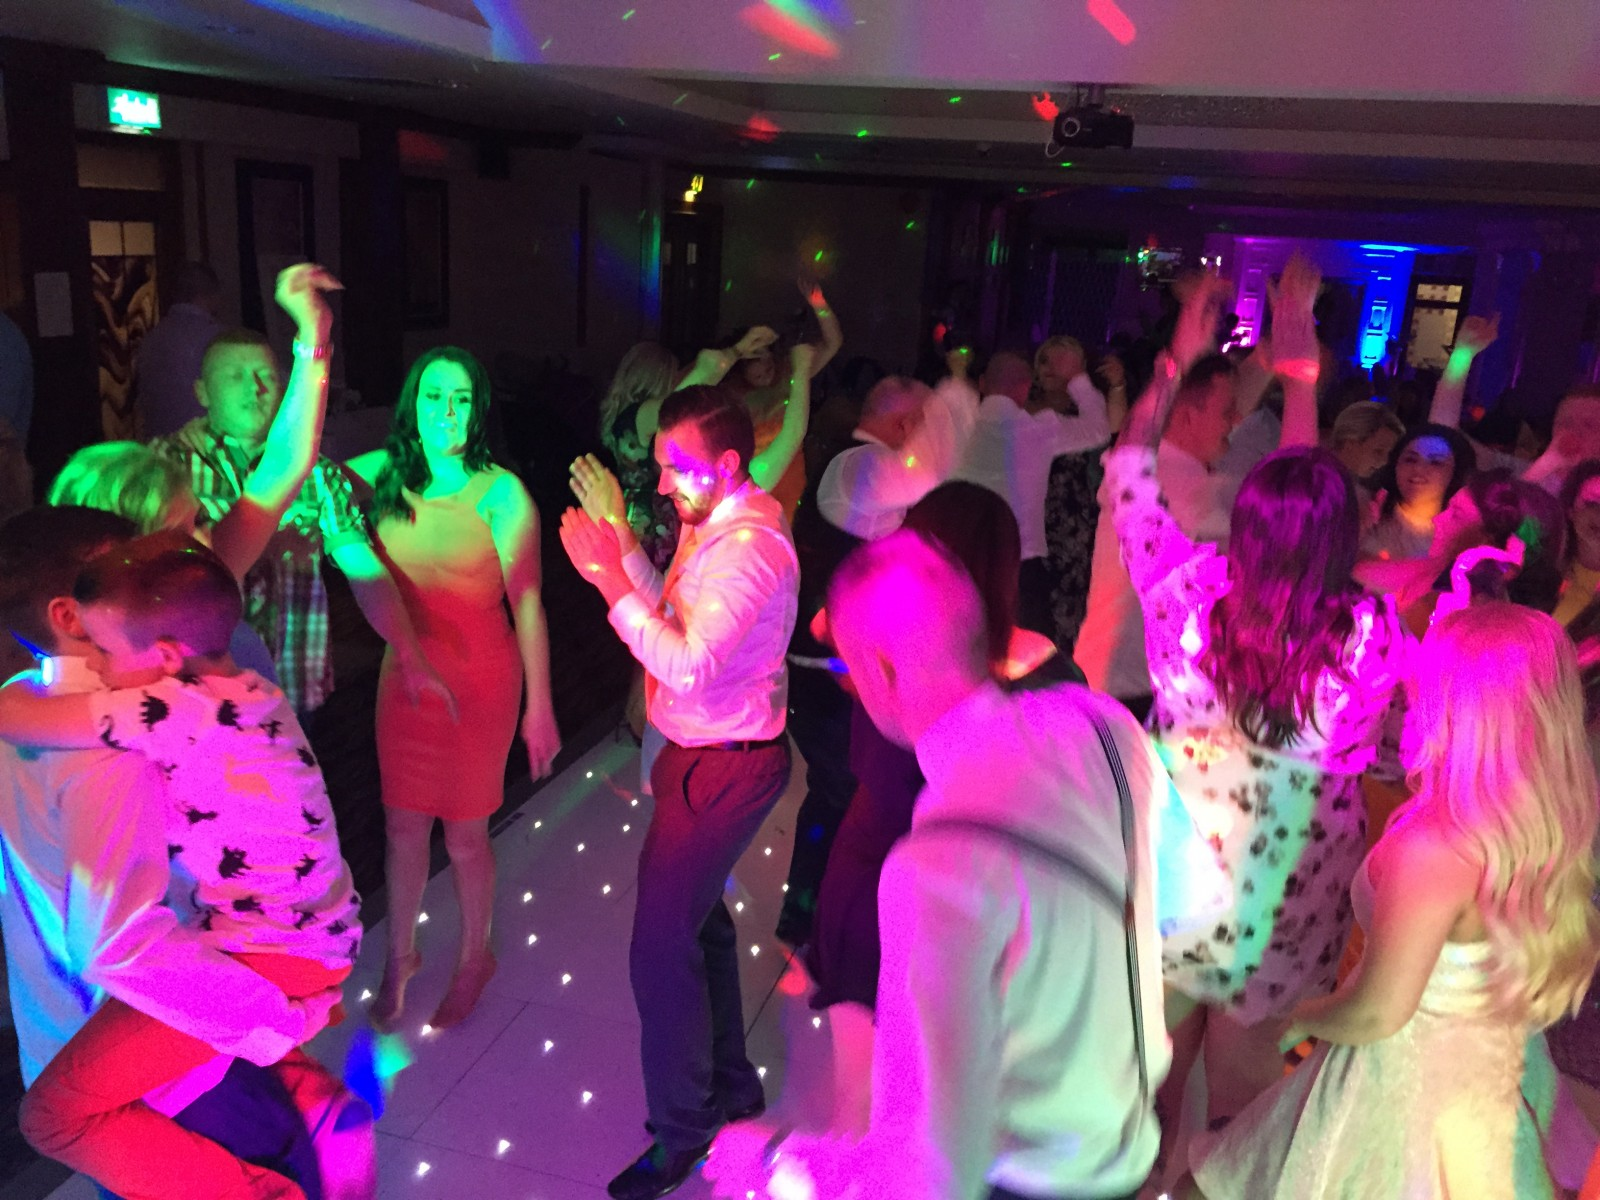 crowd shot ramada hotel the wedding disco 2015-08-09 00.16.21